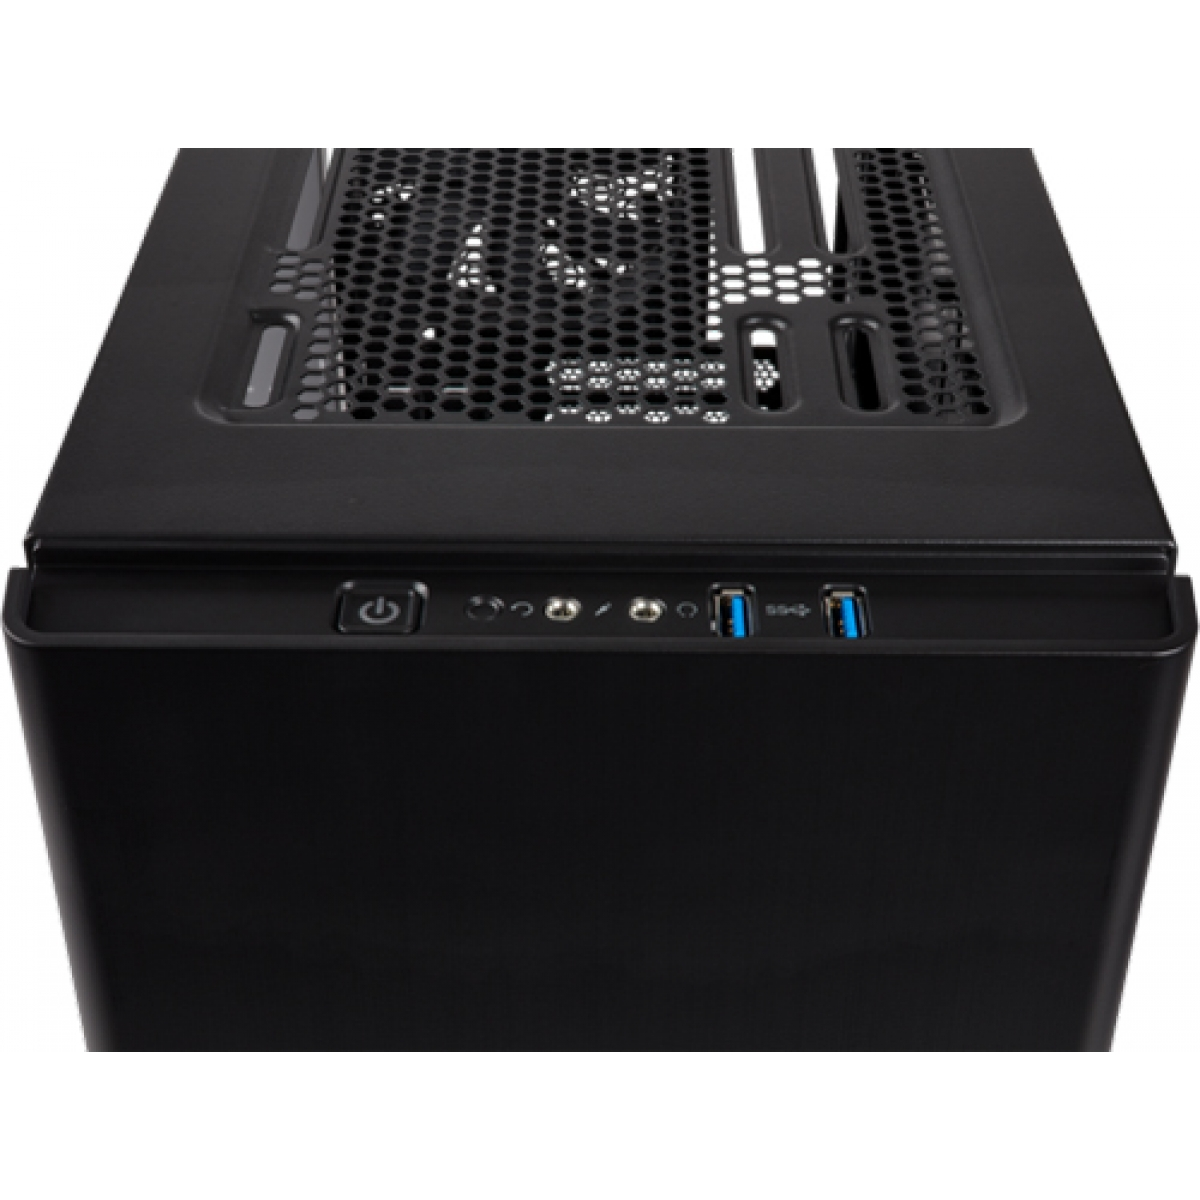 Gabinete Gamer Corsair Carbide 275R, Mid Tower, Com 2 Fans, Lateral de Acrílico, Black, S-Fonte CC-9011130-WW